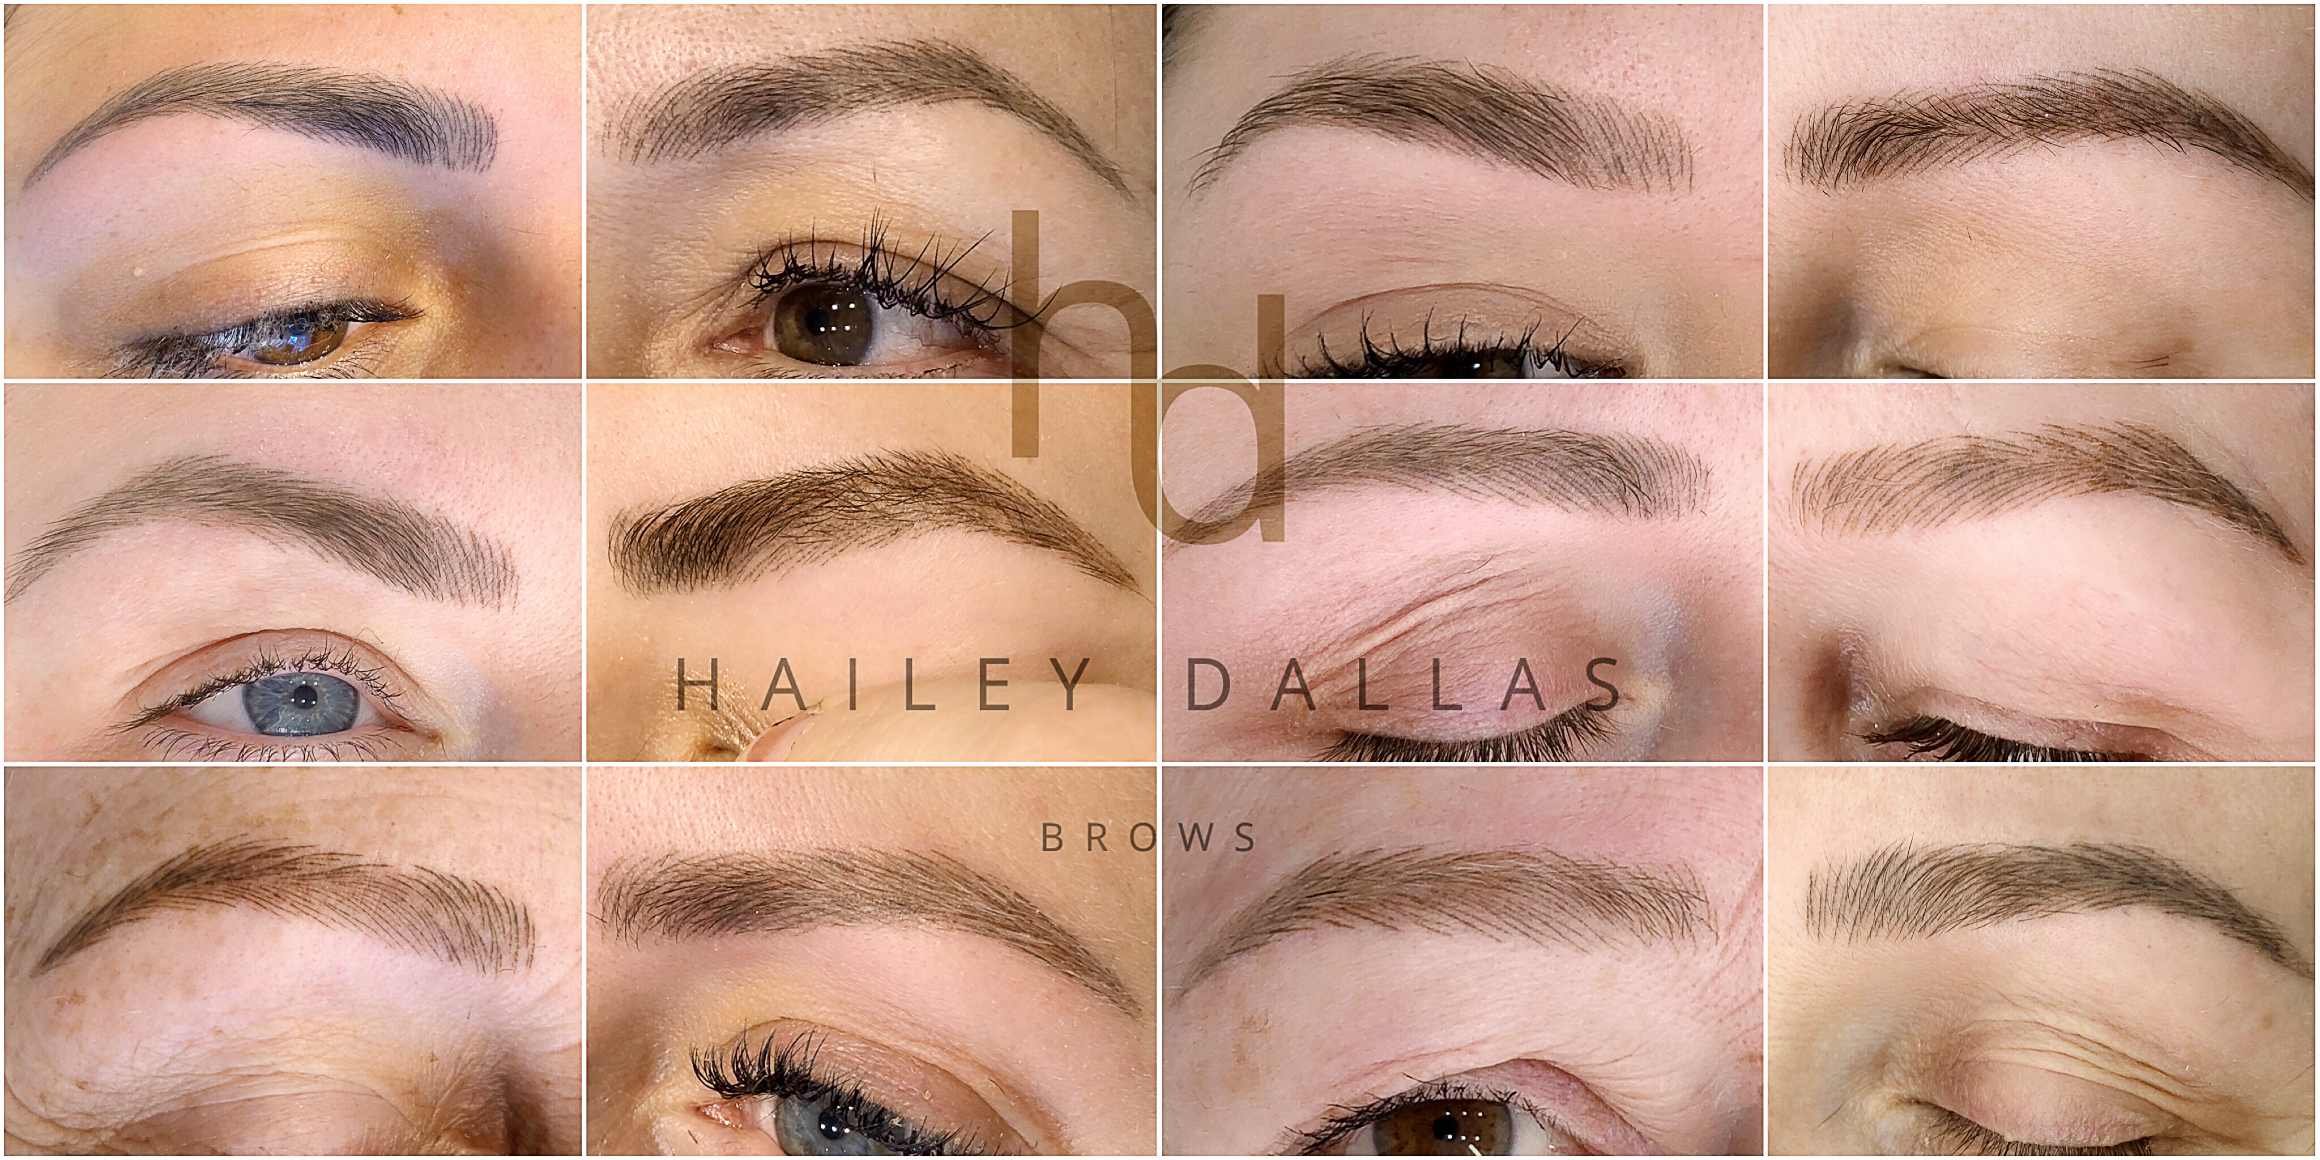 Hailey Dallas Brows